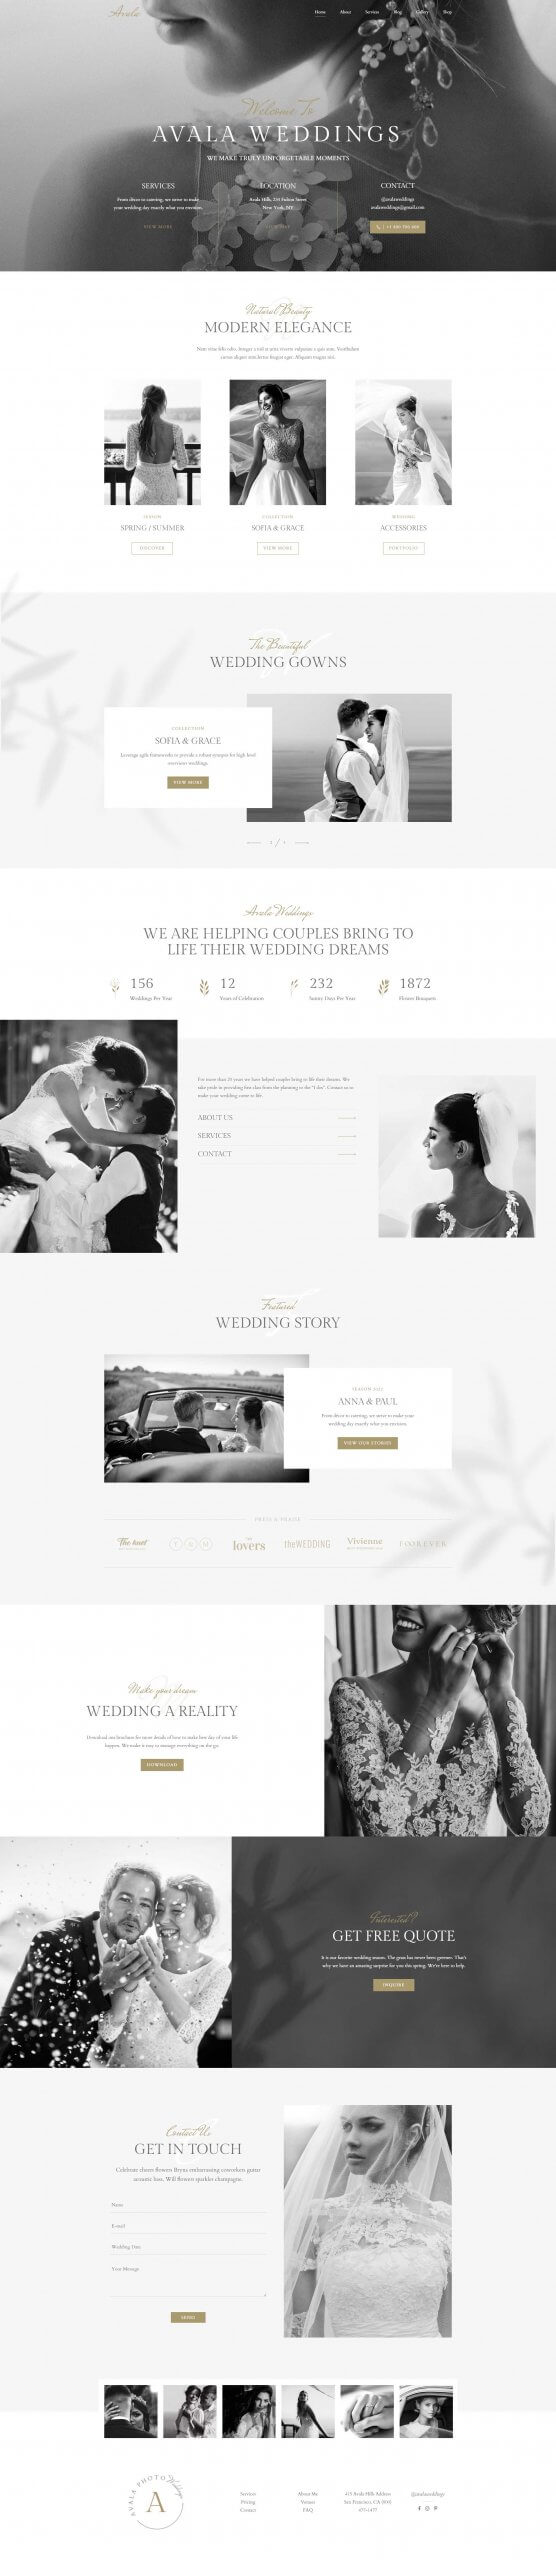 http://avala.bold-themes.com/wp-content/uploads/2021/02/Winter-Home-01-scaled.jpg